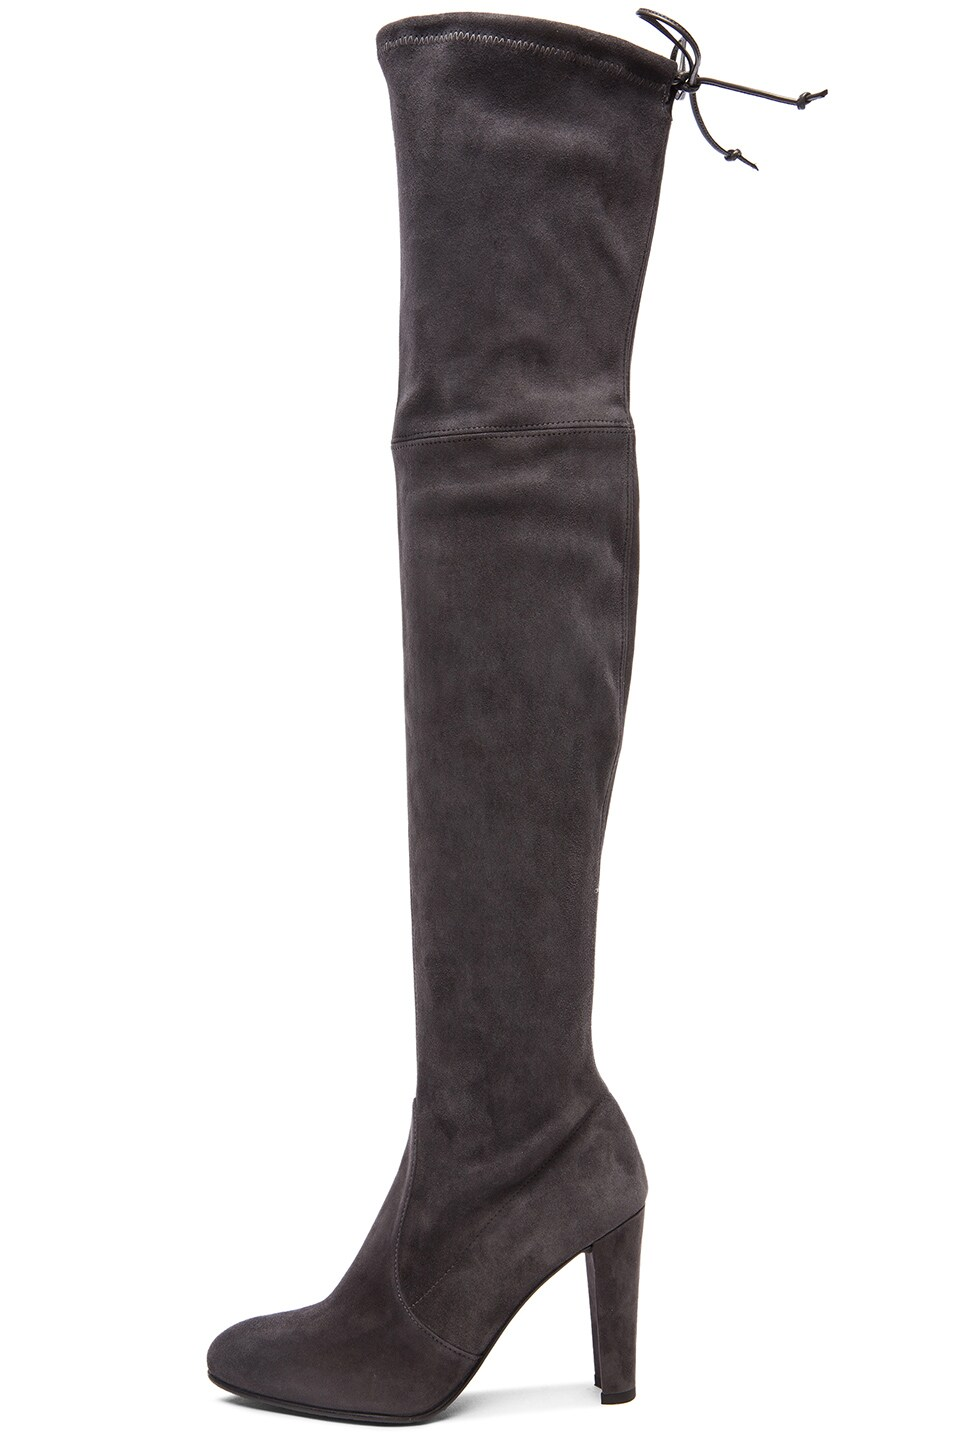 Image 5 of Stuart Weitzman Highland Suede Boots in Grey Suede